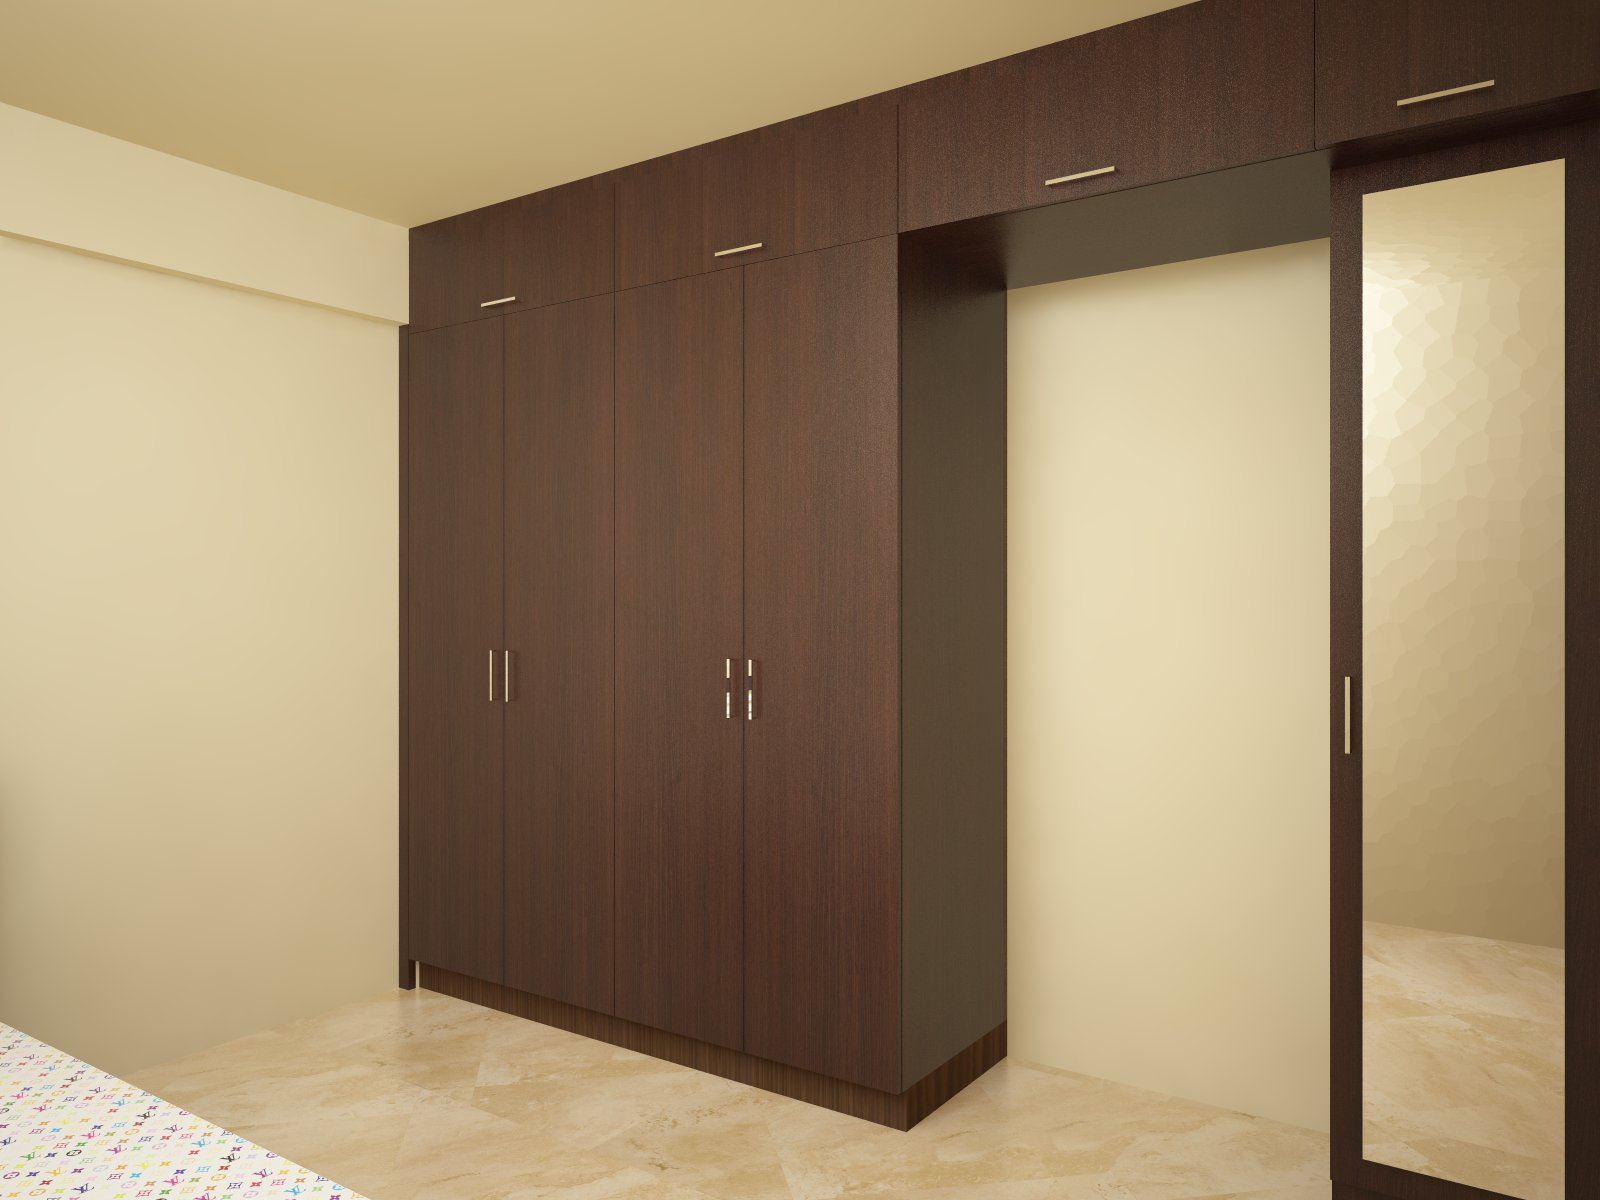 Bedroom Sliding door Wardrobe Designs by Top Interiors Design Company Bangalore